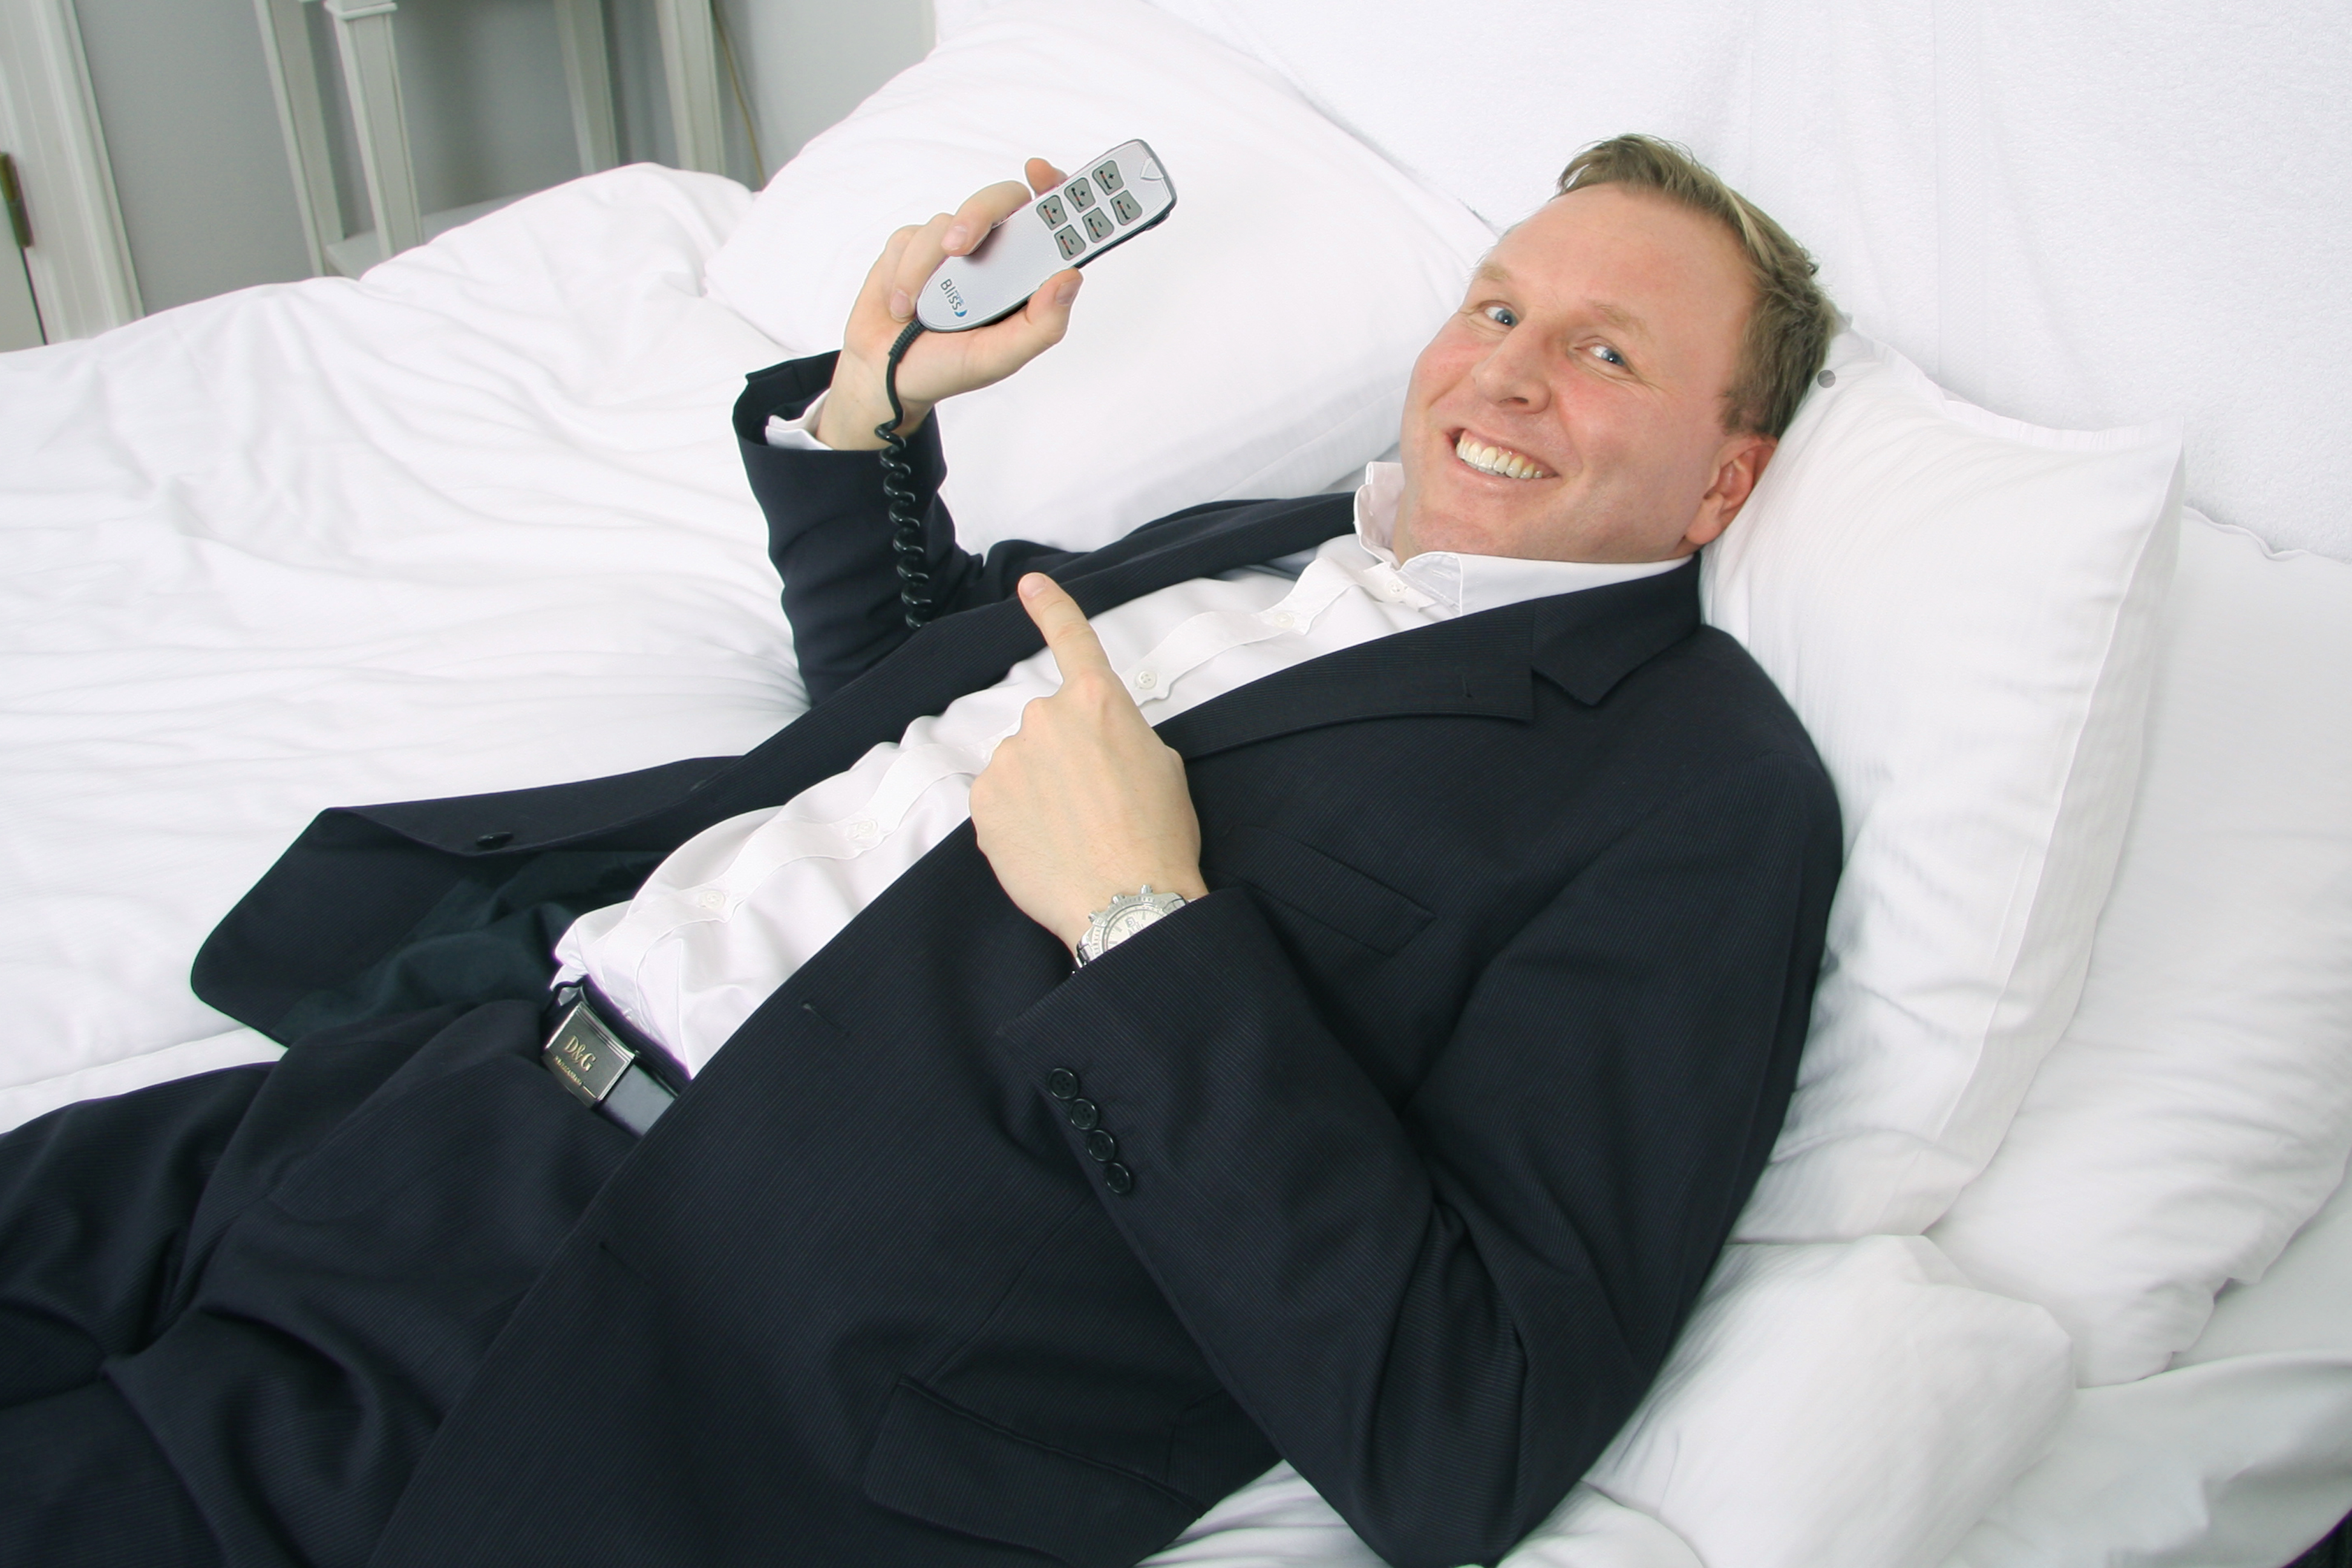 Mattias Sörensen, CEO Bliss Nordic, demonstrates how the bed Bliss easily adjusts with a remote control.